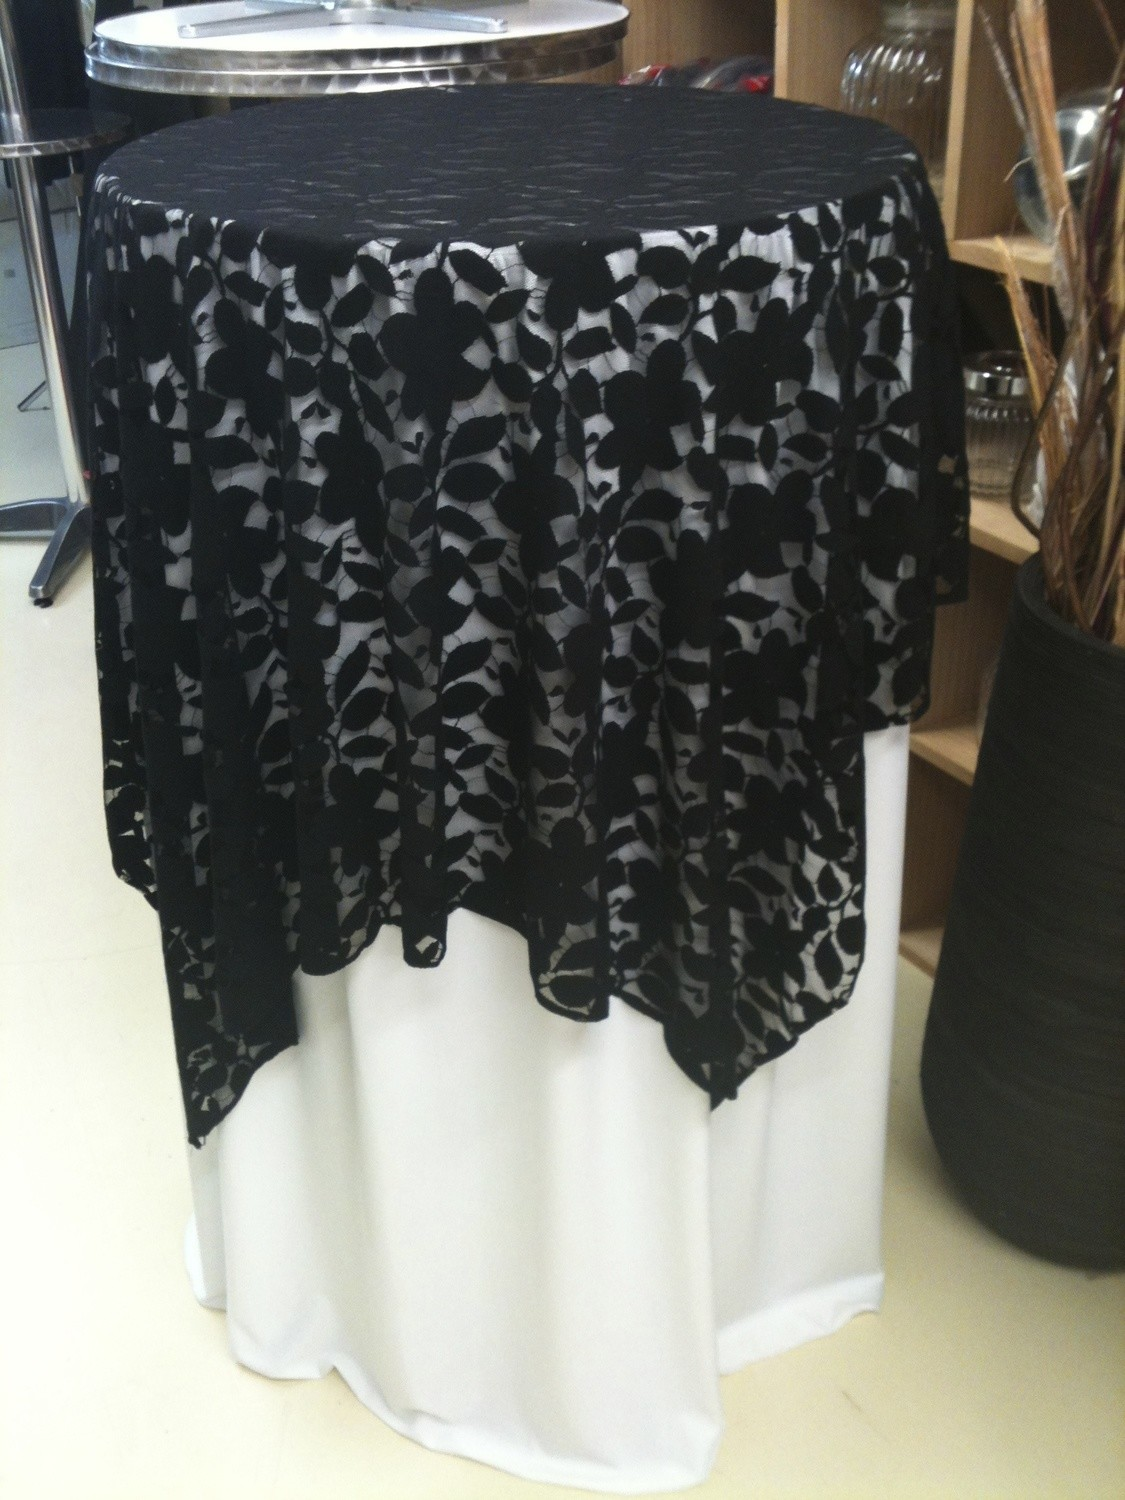 Bar Leaner Cover - Lace - Black